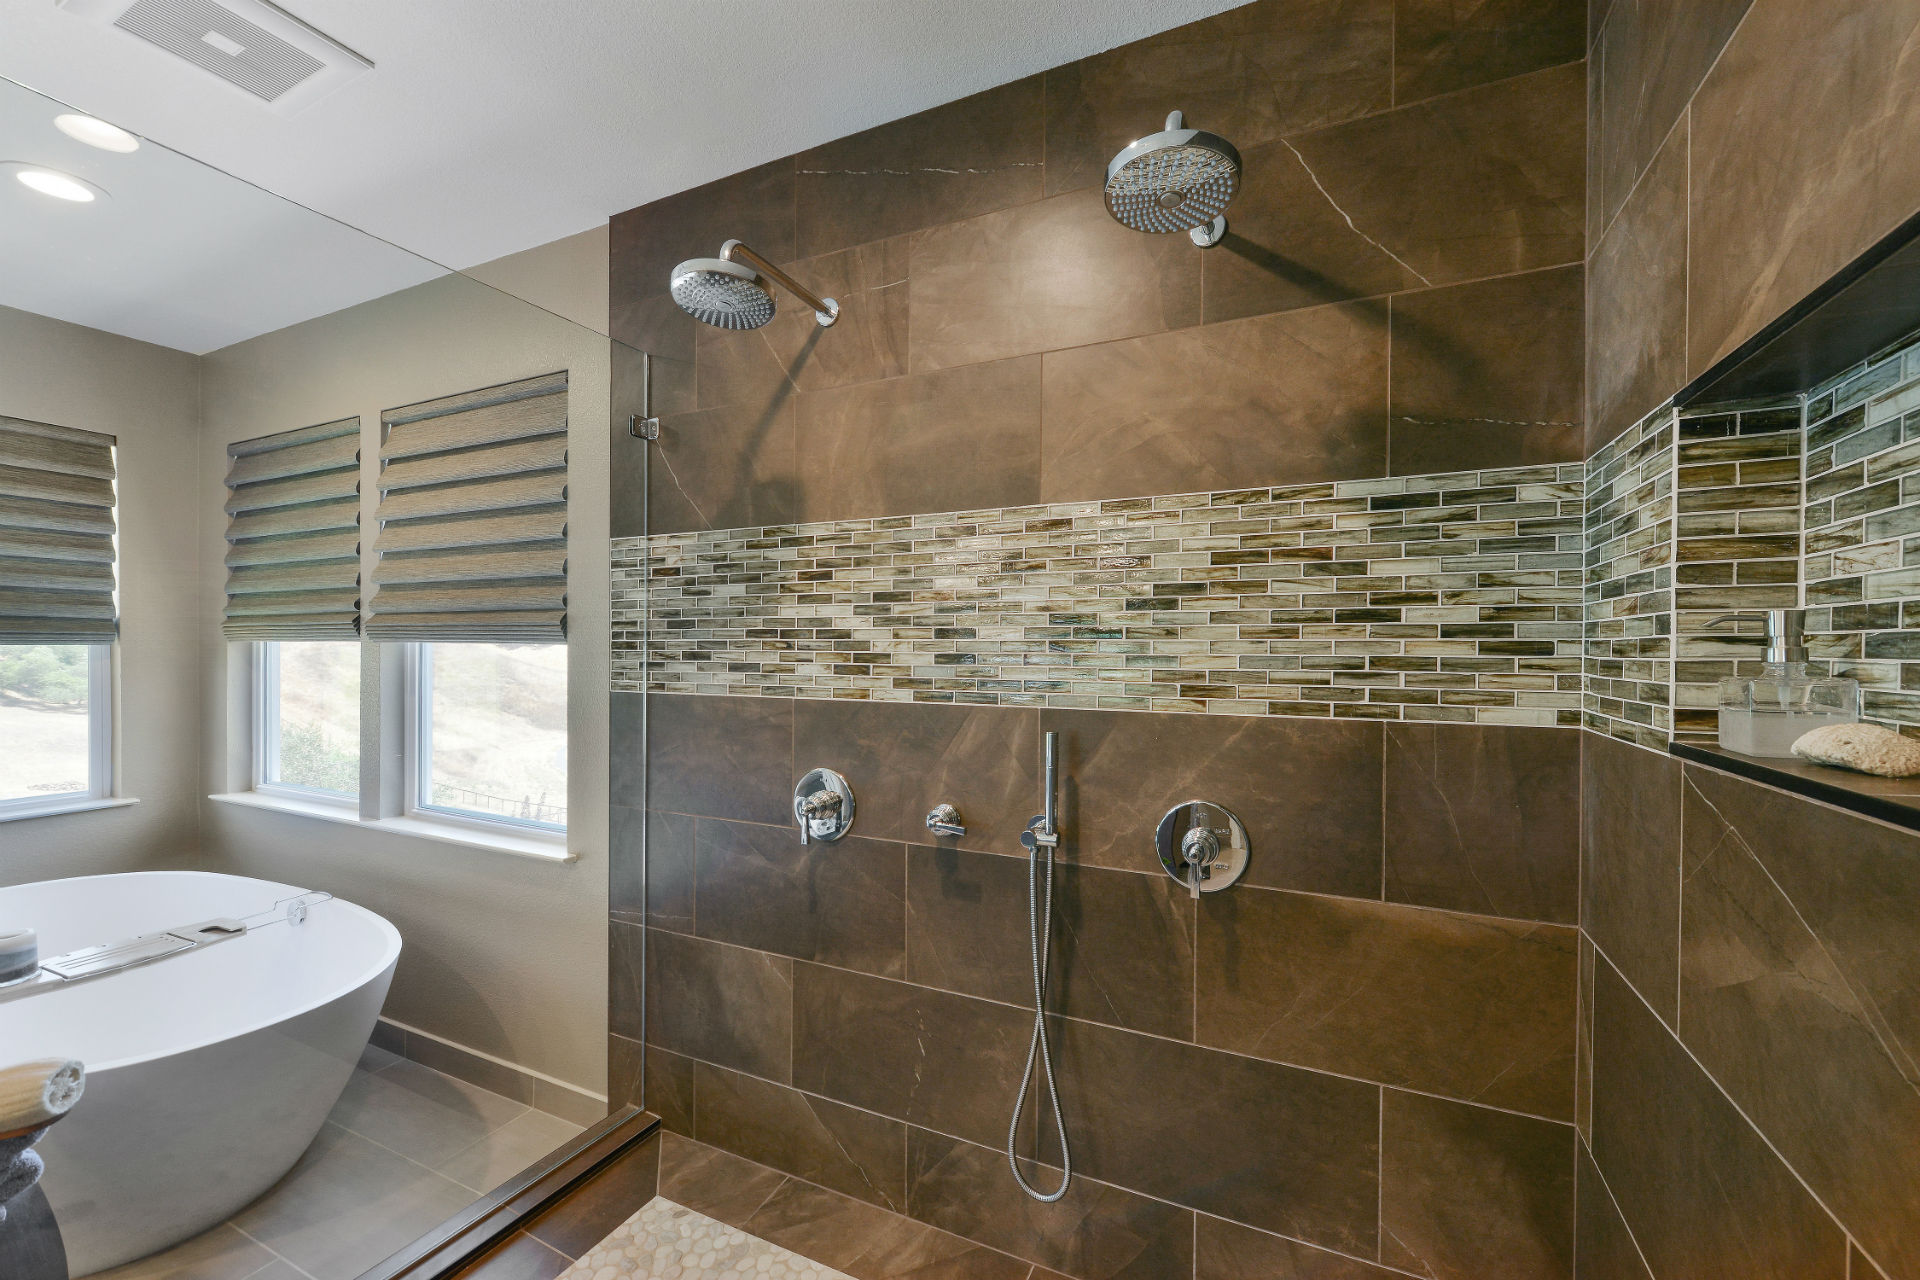 Bathroom Remodel San Francisco Model 20 best bathroom remodel contractors in san francisco | badeloft usa